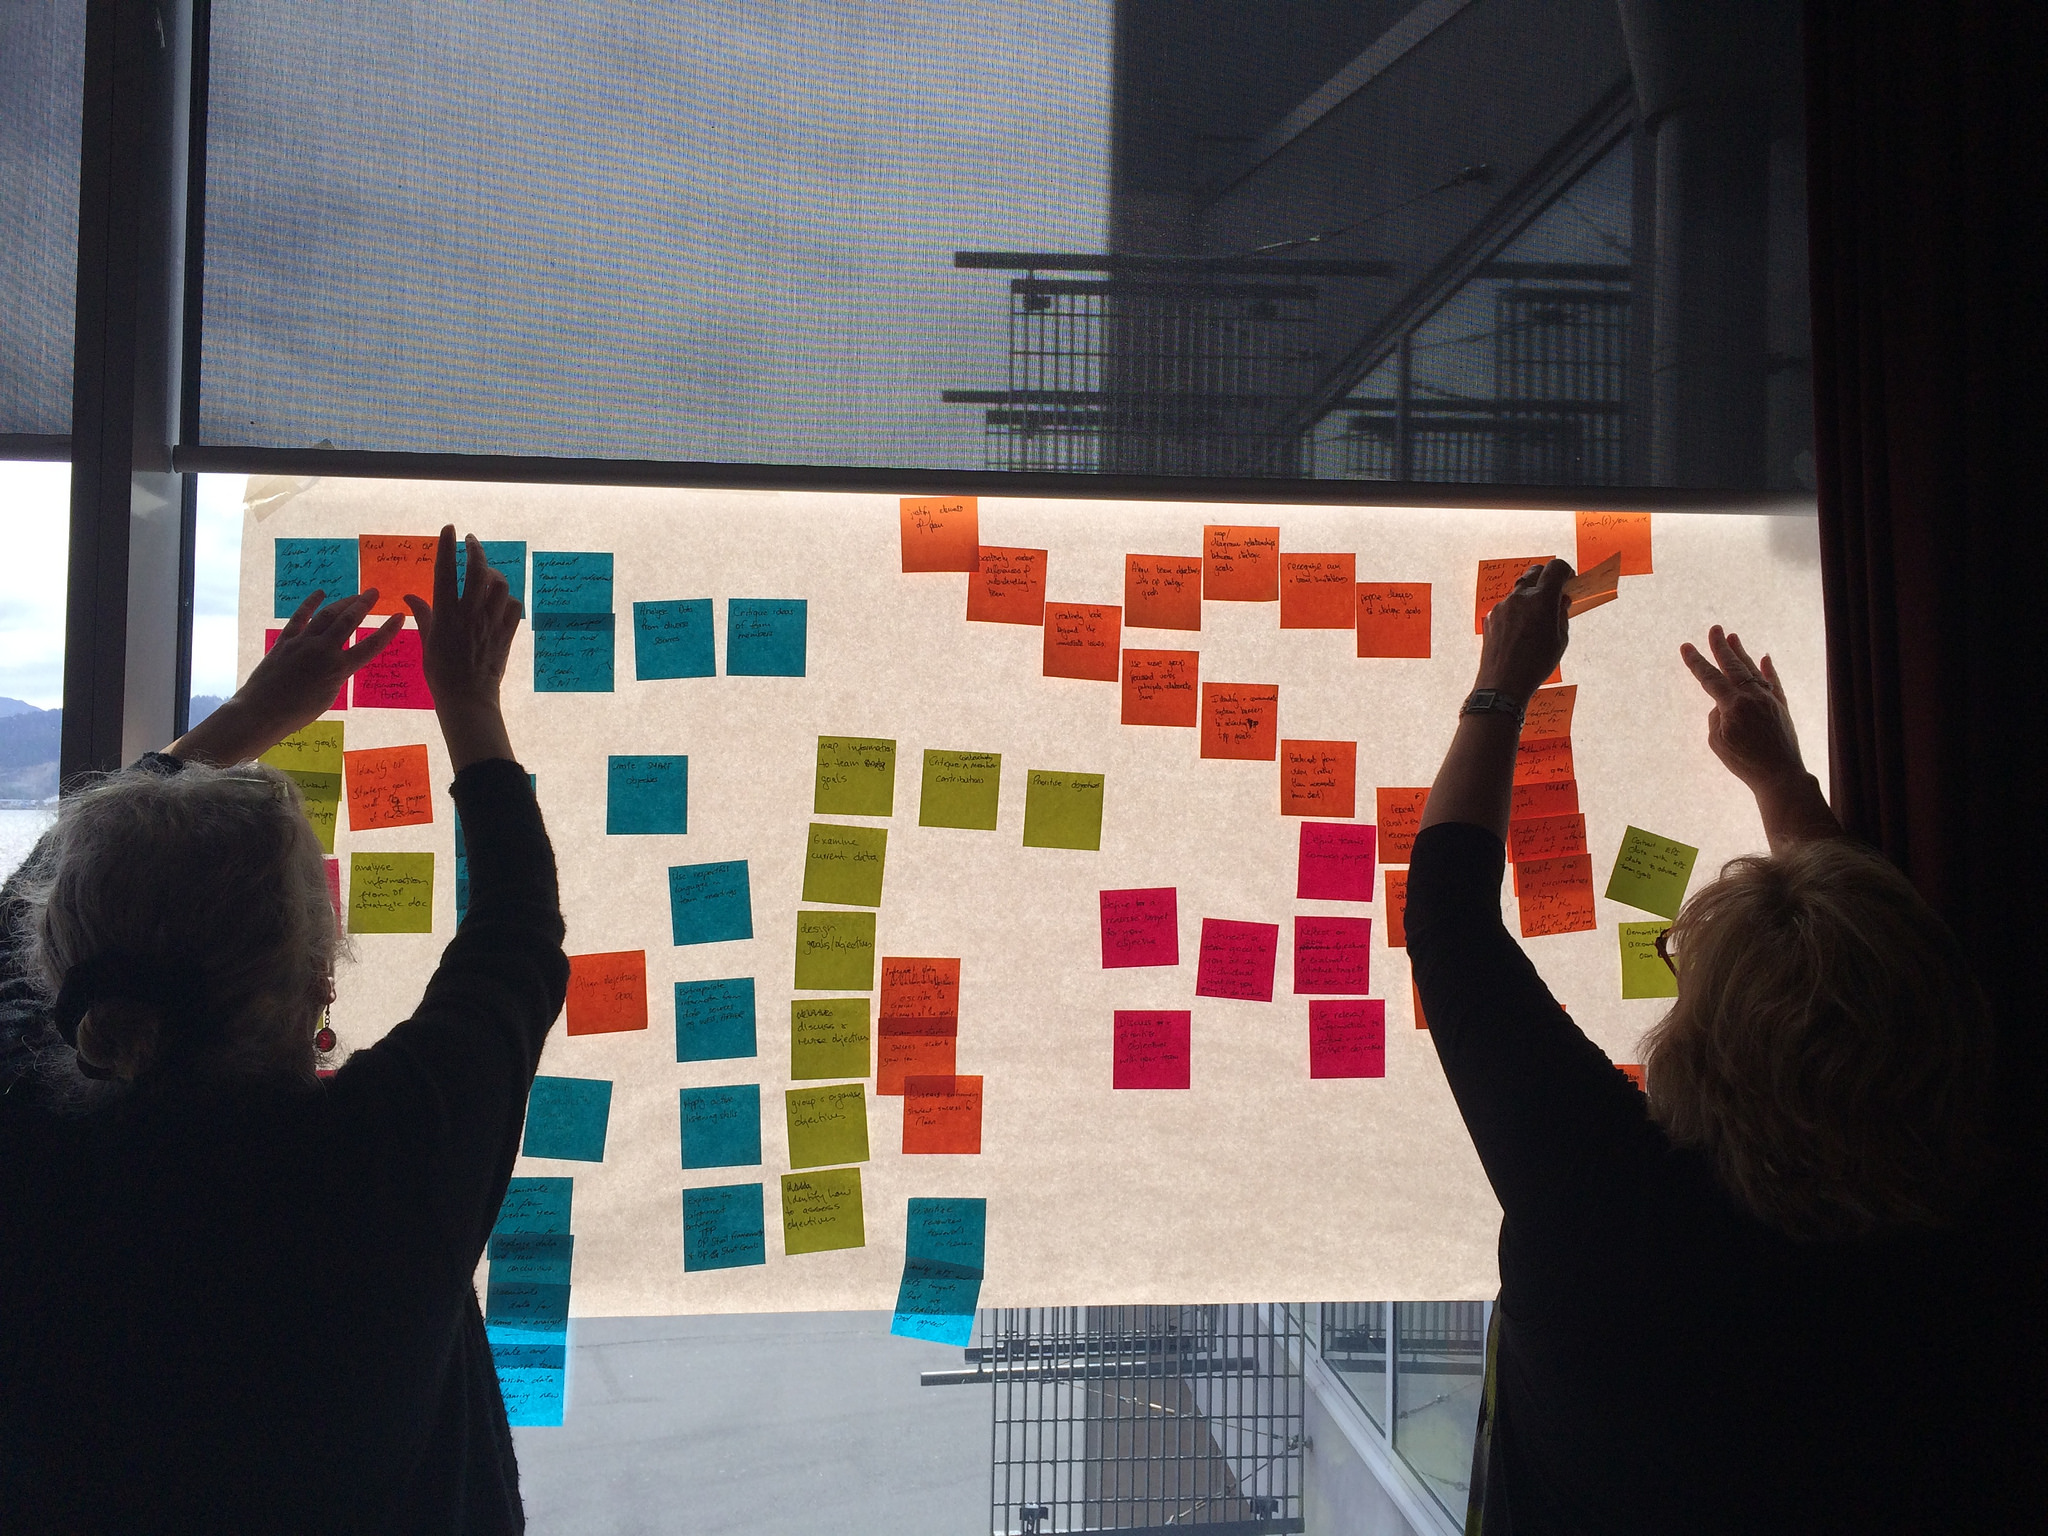 Two women putting Post-it notes on a whiteboard.